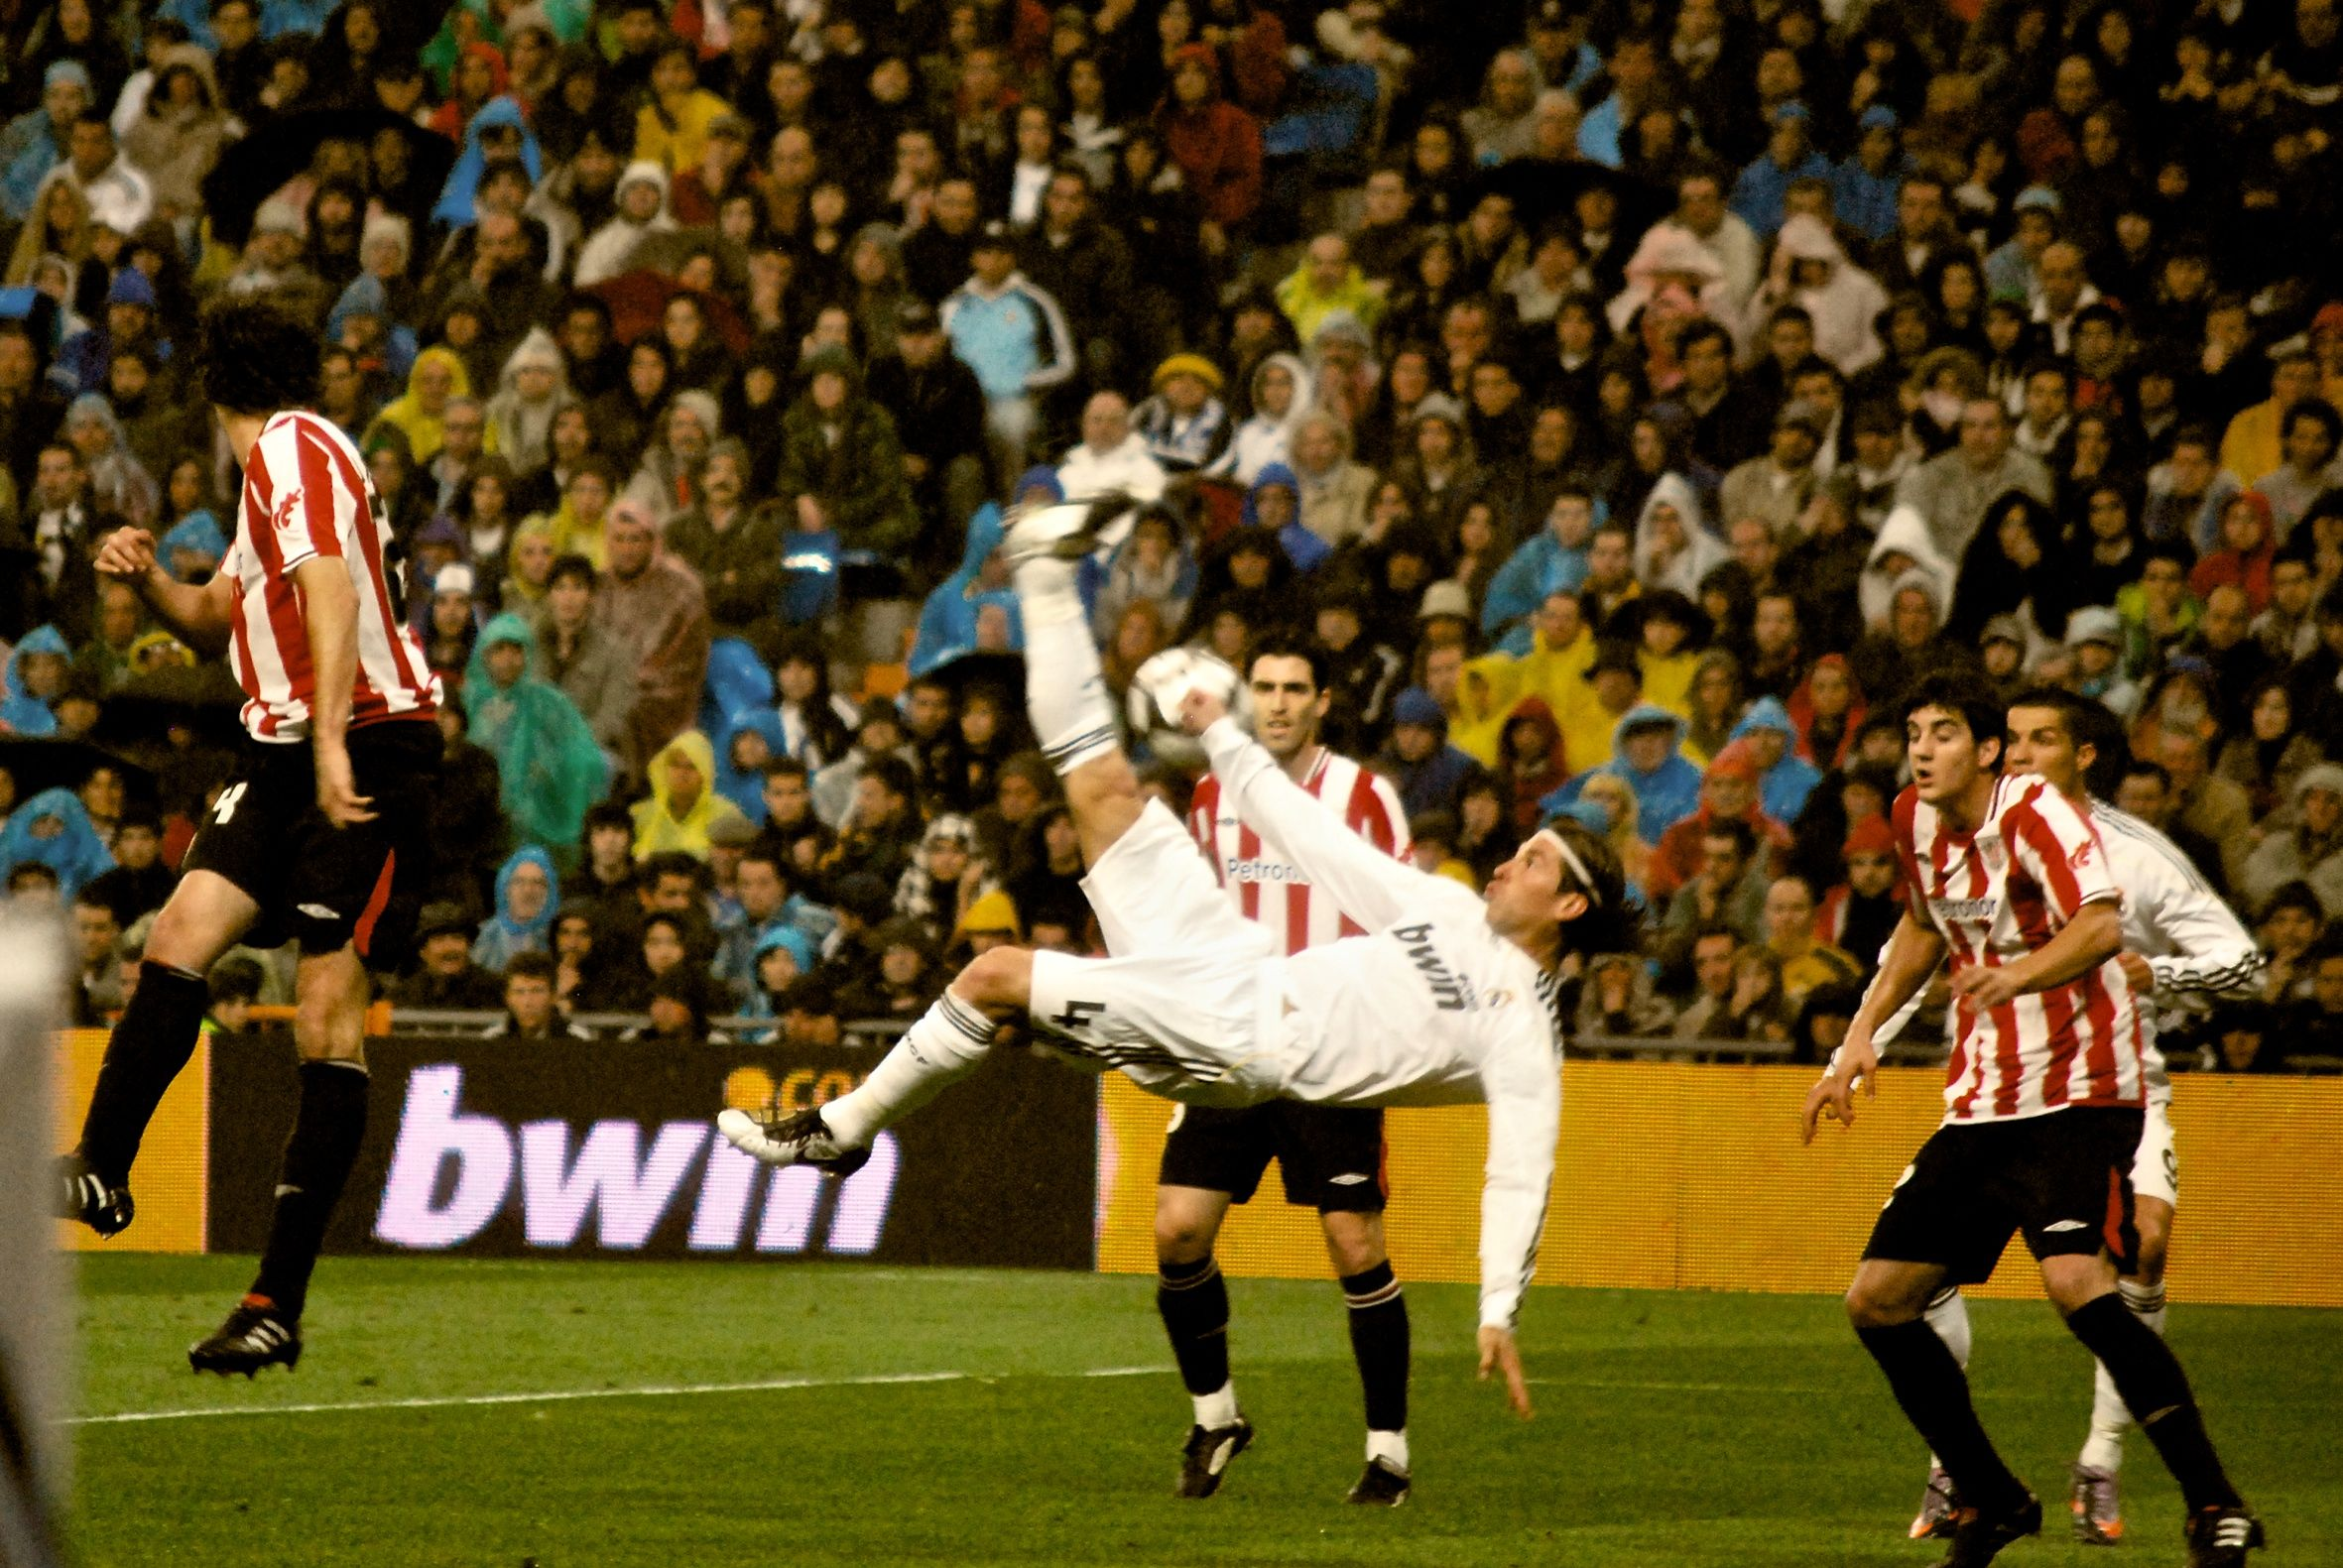 Bicycle Kick A Graceful And Athletic Move Not Often Seen In